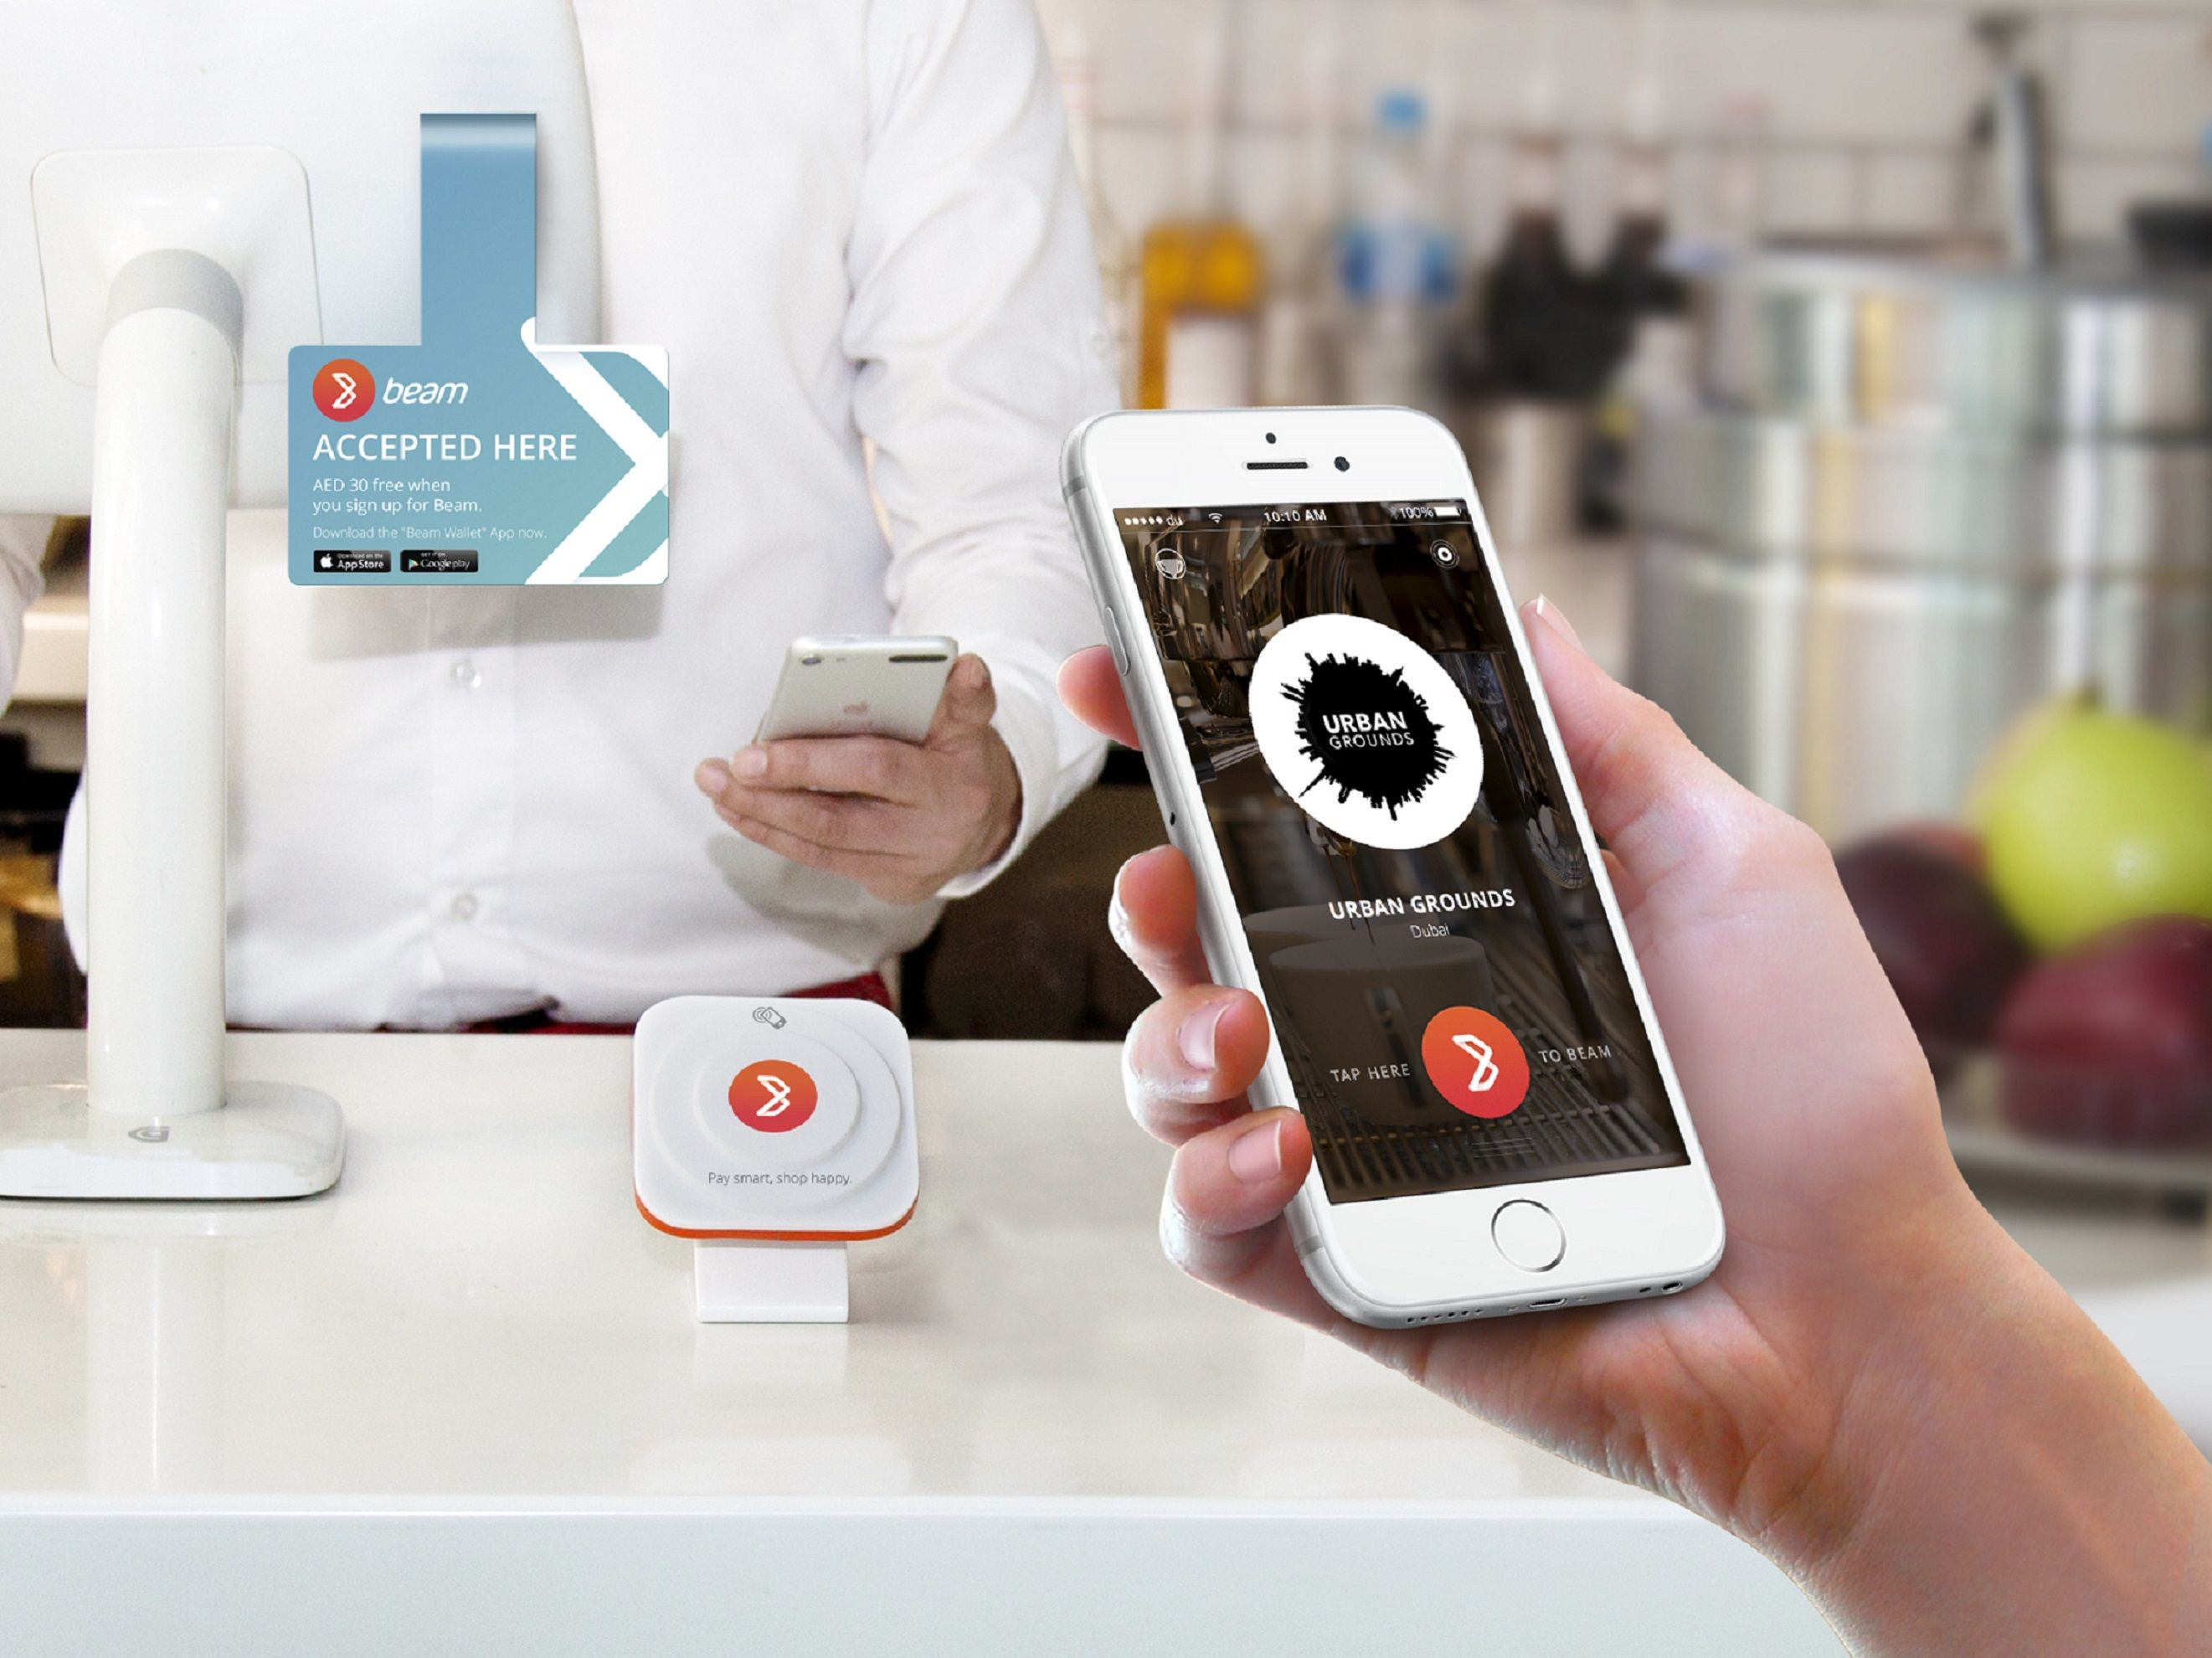 Smart Beacon Market Size, Trends, Shares, Insights and